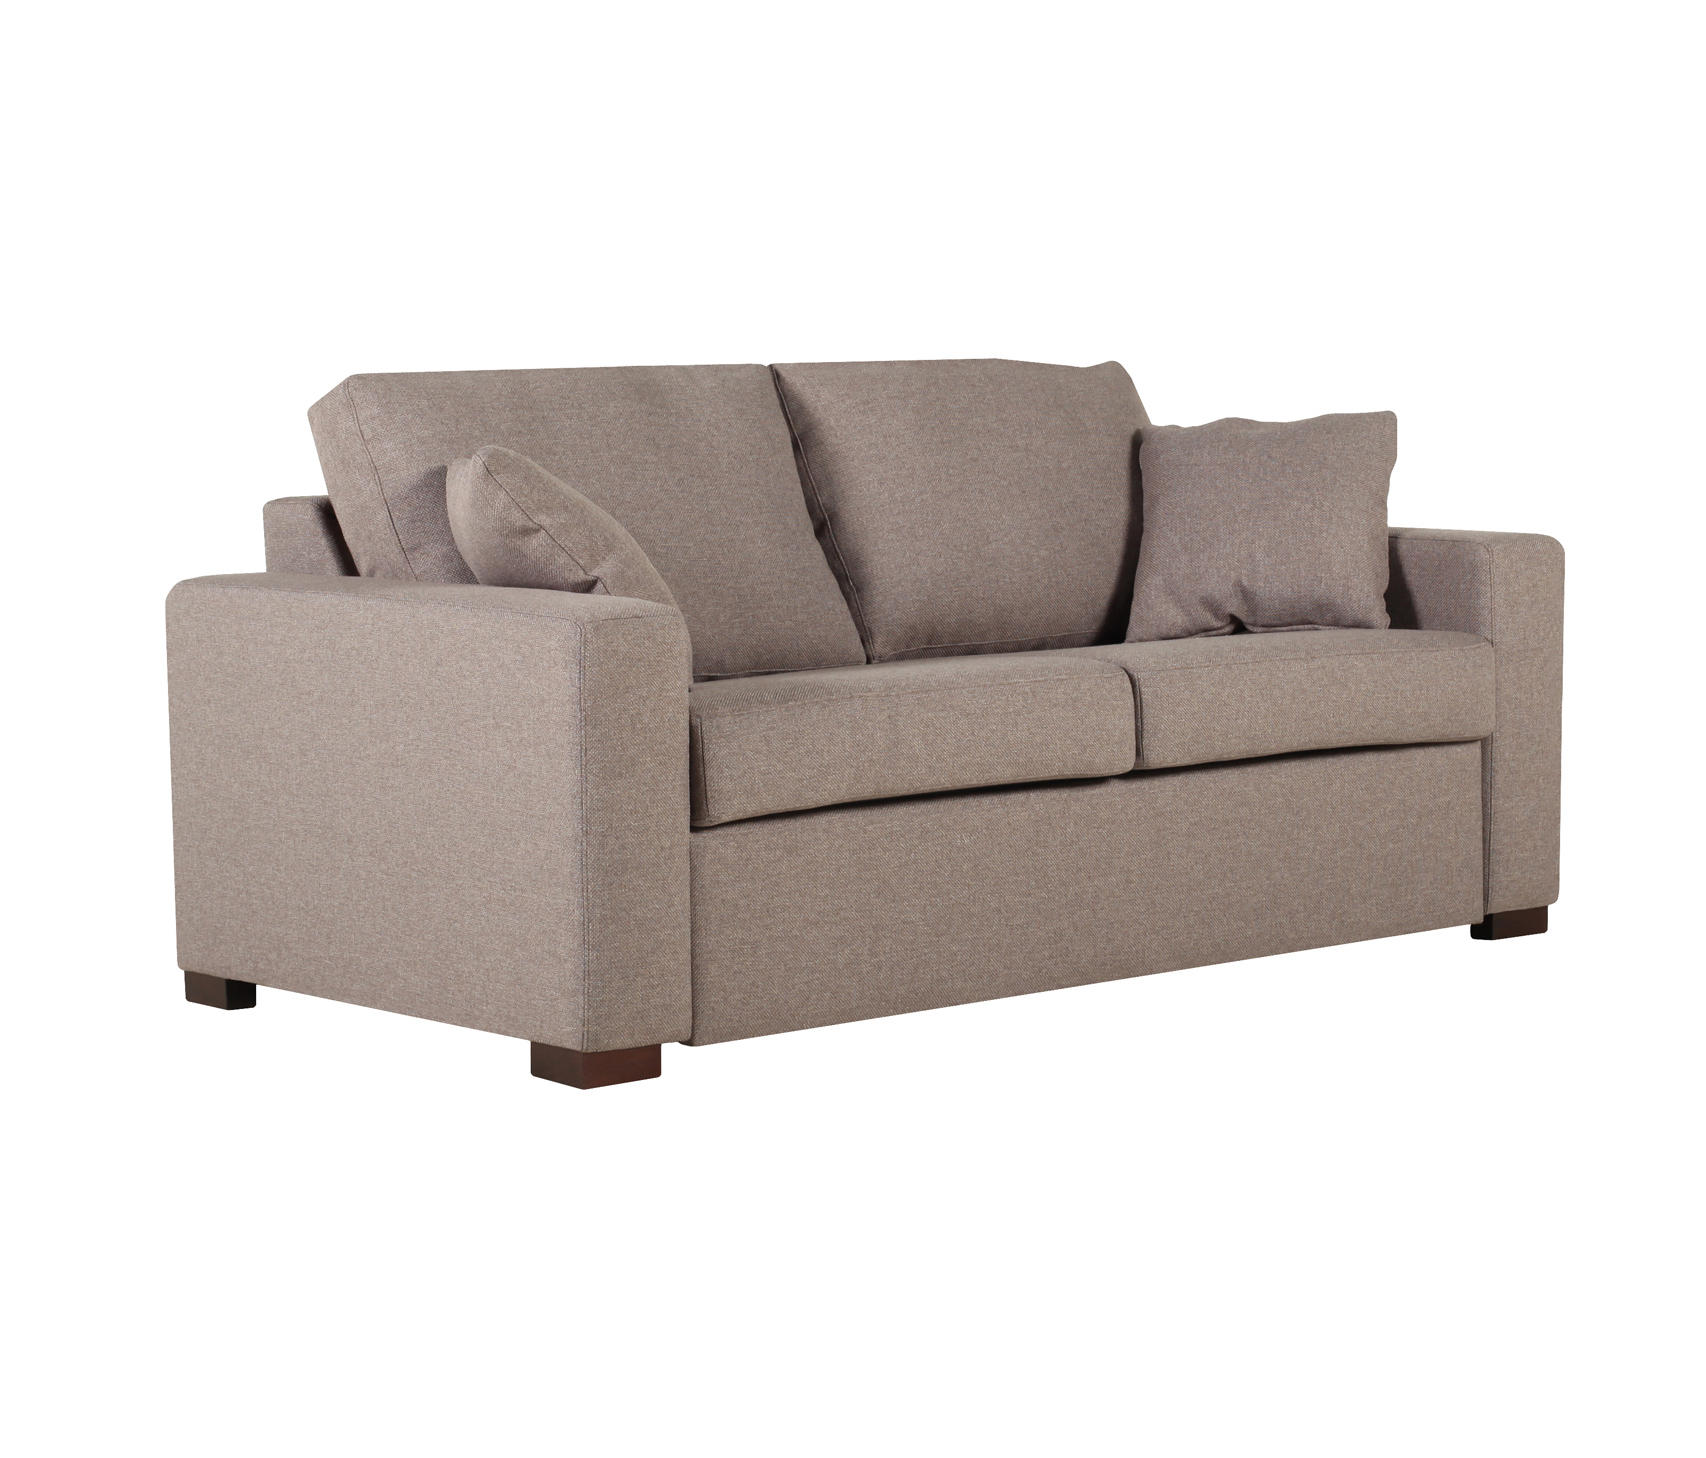 Sofas Tucson Sofa Beds Design Amazing Traditional Sectional Sofas Tucson Ideas Thesofa